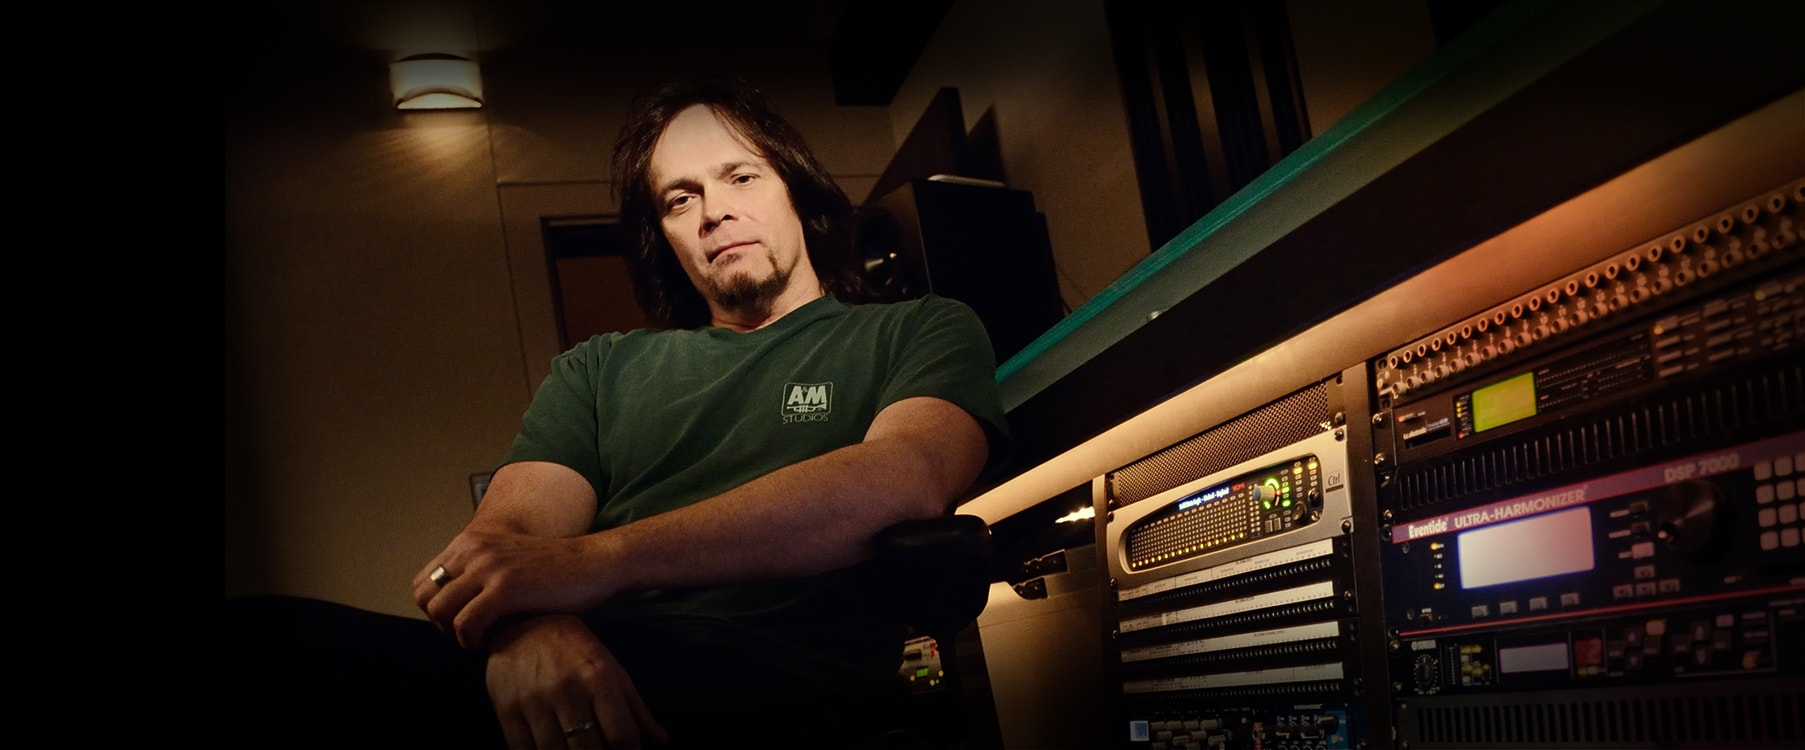 Rich Chycki on Mixing Rush and Dream Theater with UAD Plug‑Ins